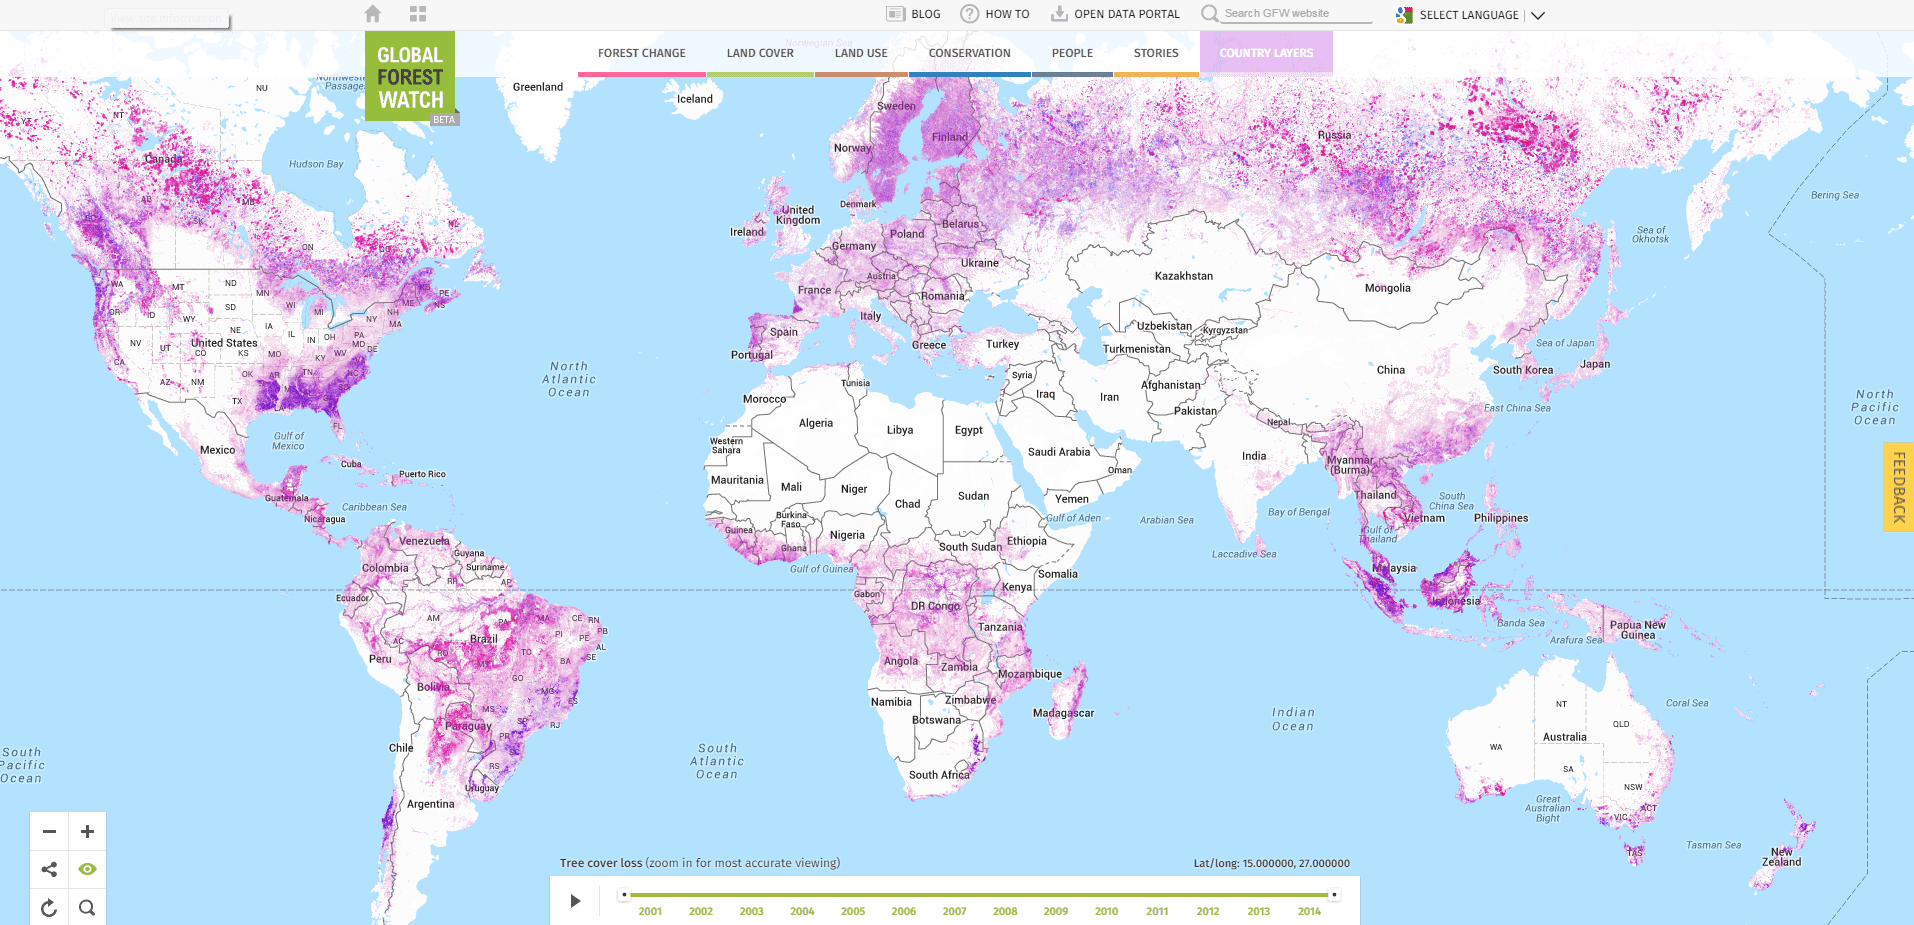 Site Lets Visitors Visualize Global Deforestation In Real ... Global Deforestation Map on global mining map, global unemployment map, global sea level rise map, global peace map, global famine map, global overfishing map, global wildlife map, global markets map, global culture map, global technology map, global urbanization map, global finance map, global africa map, global carbon footprint map, global world map, global hurricanes map, global china map, global salinity map, global food security map, global biomass map,